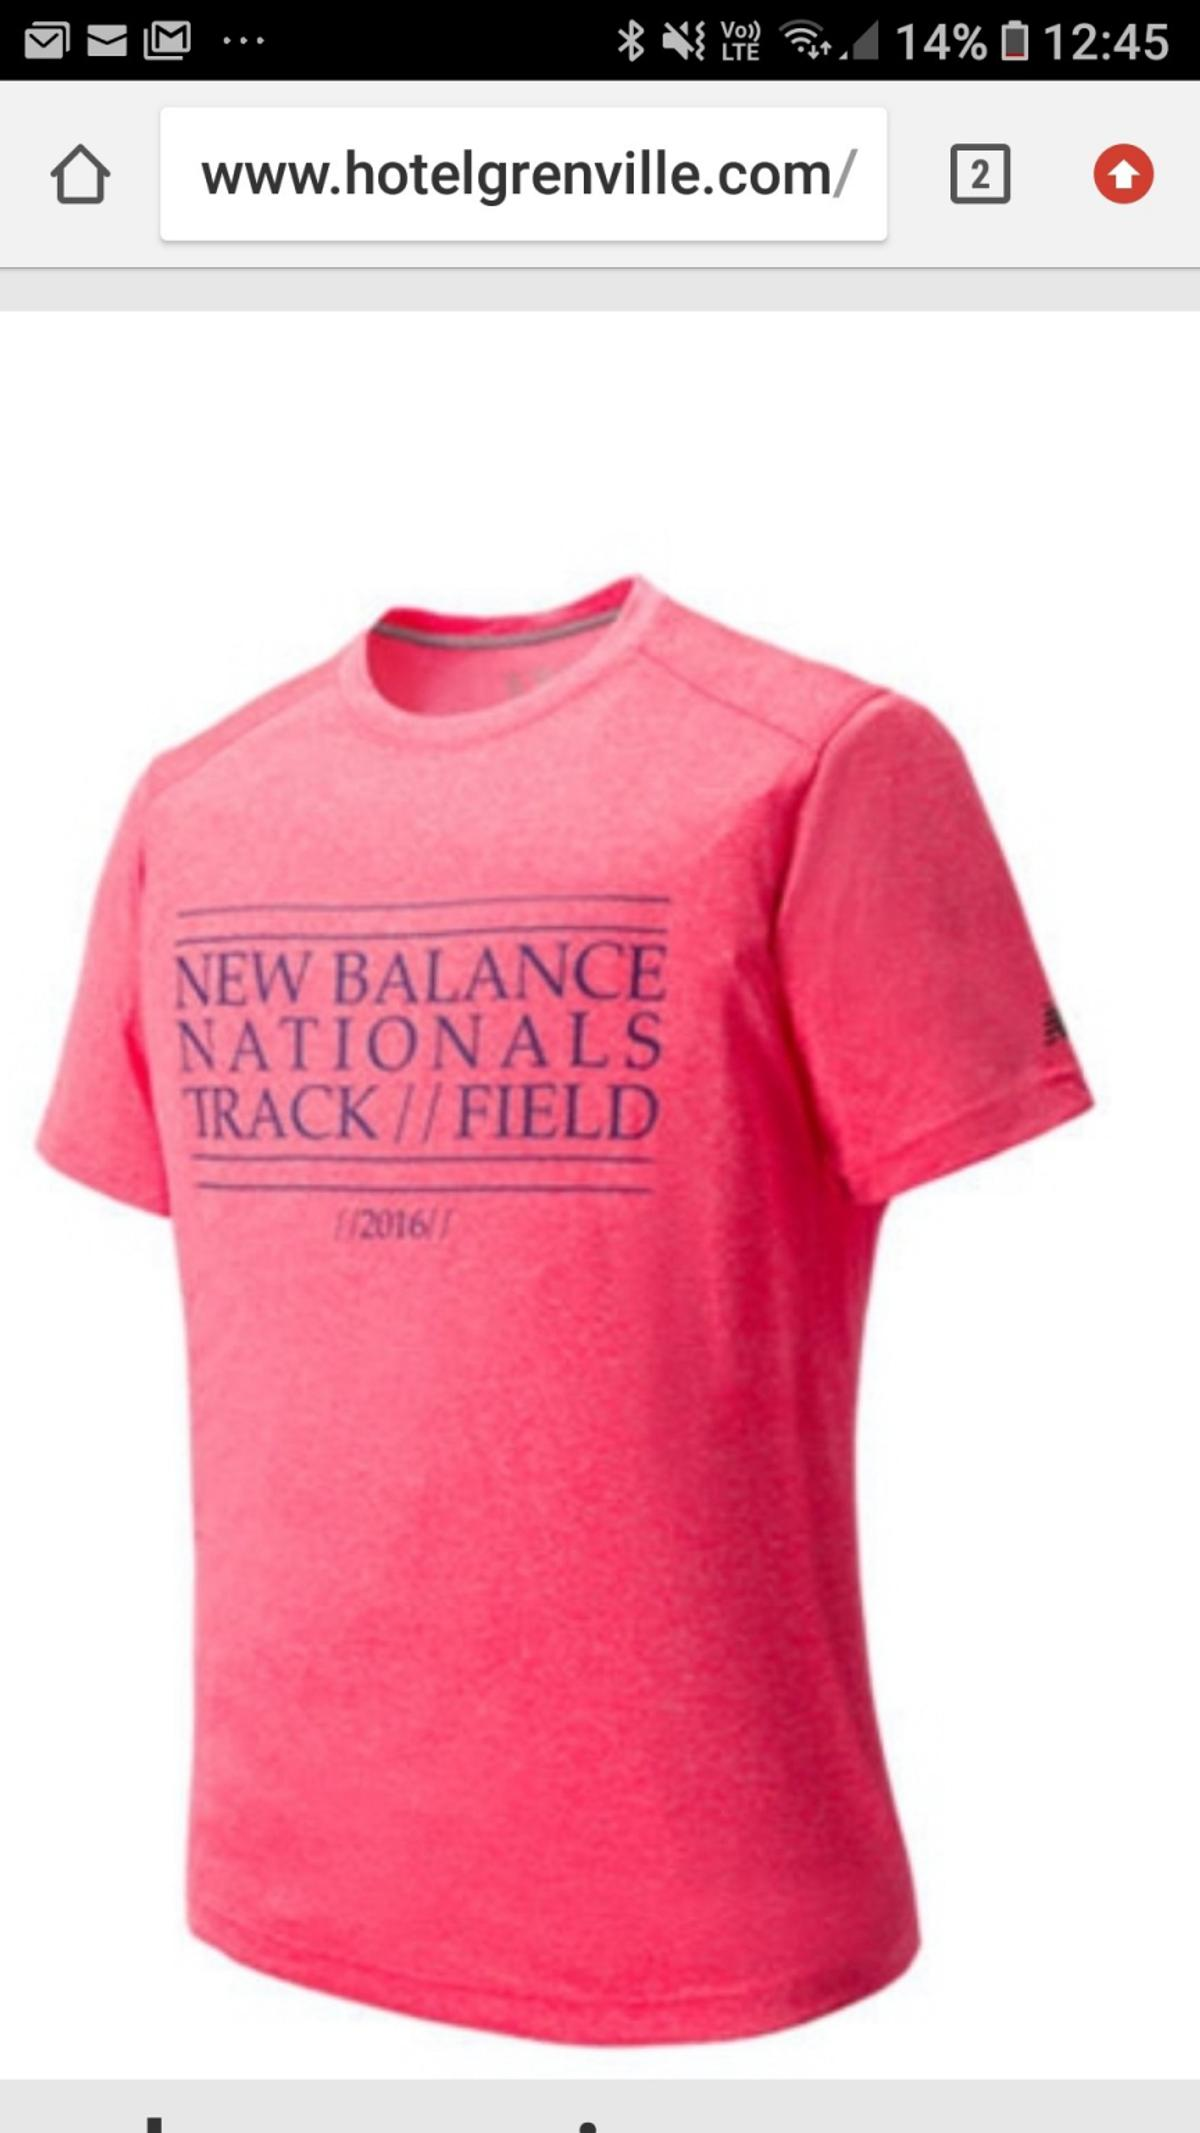 dd79f70a82915 new balance t-shirt men's size L in Three Rivers for £9.99 for sale ...